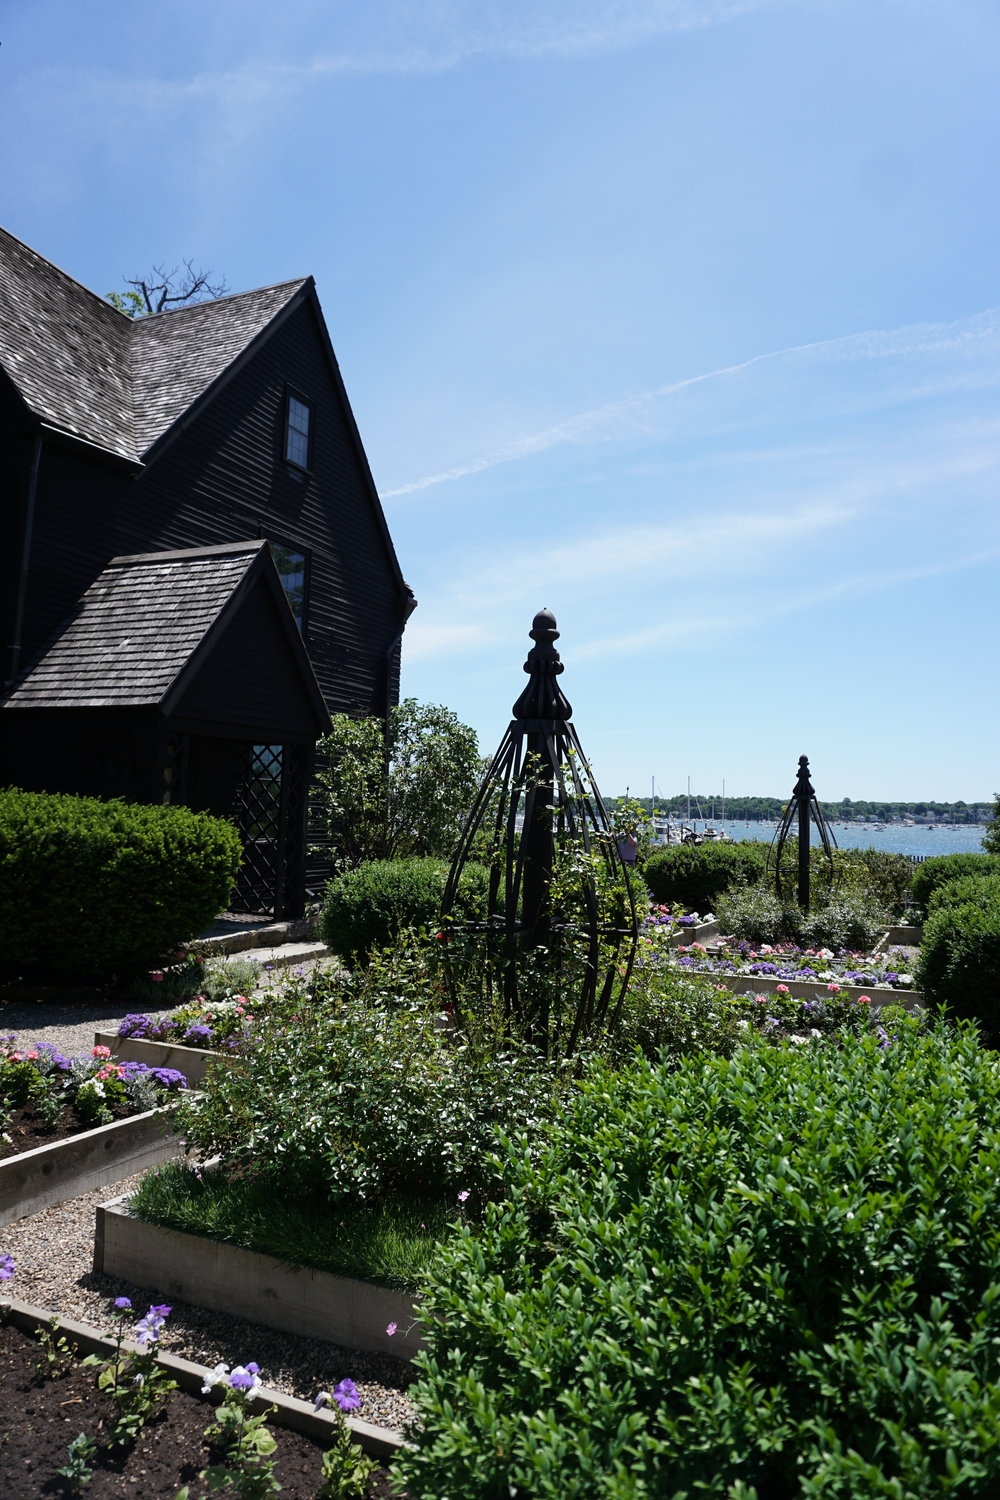 Photo of the gardens at The House of Seven Gable by Linda Smith Davis